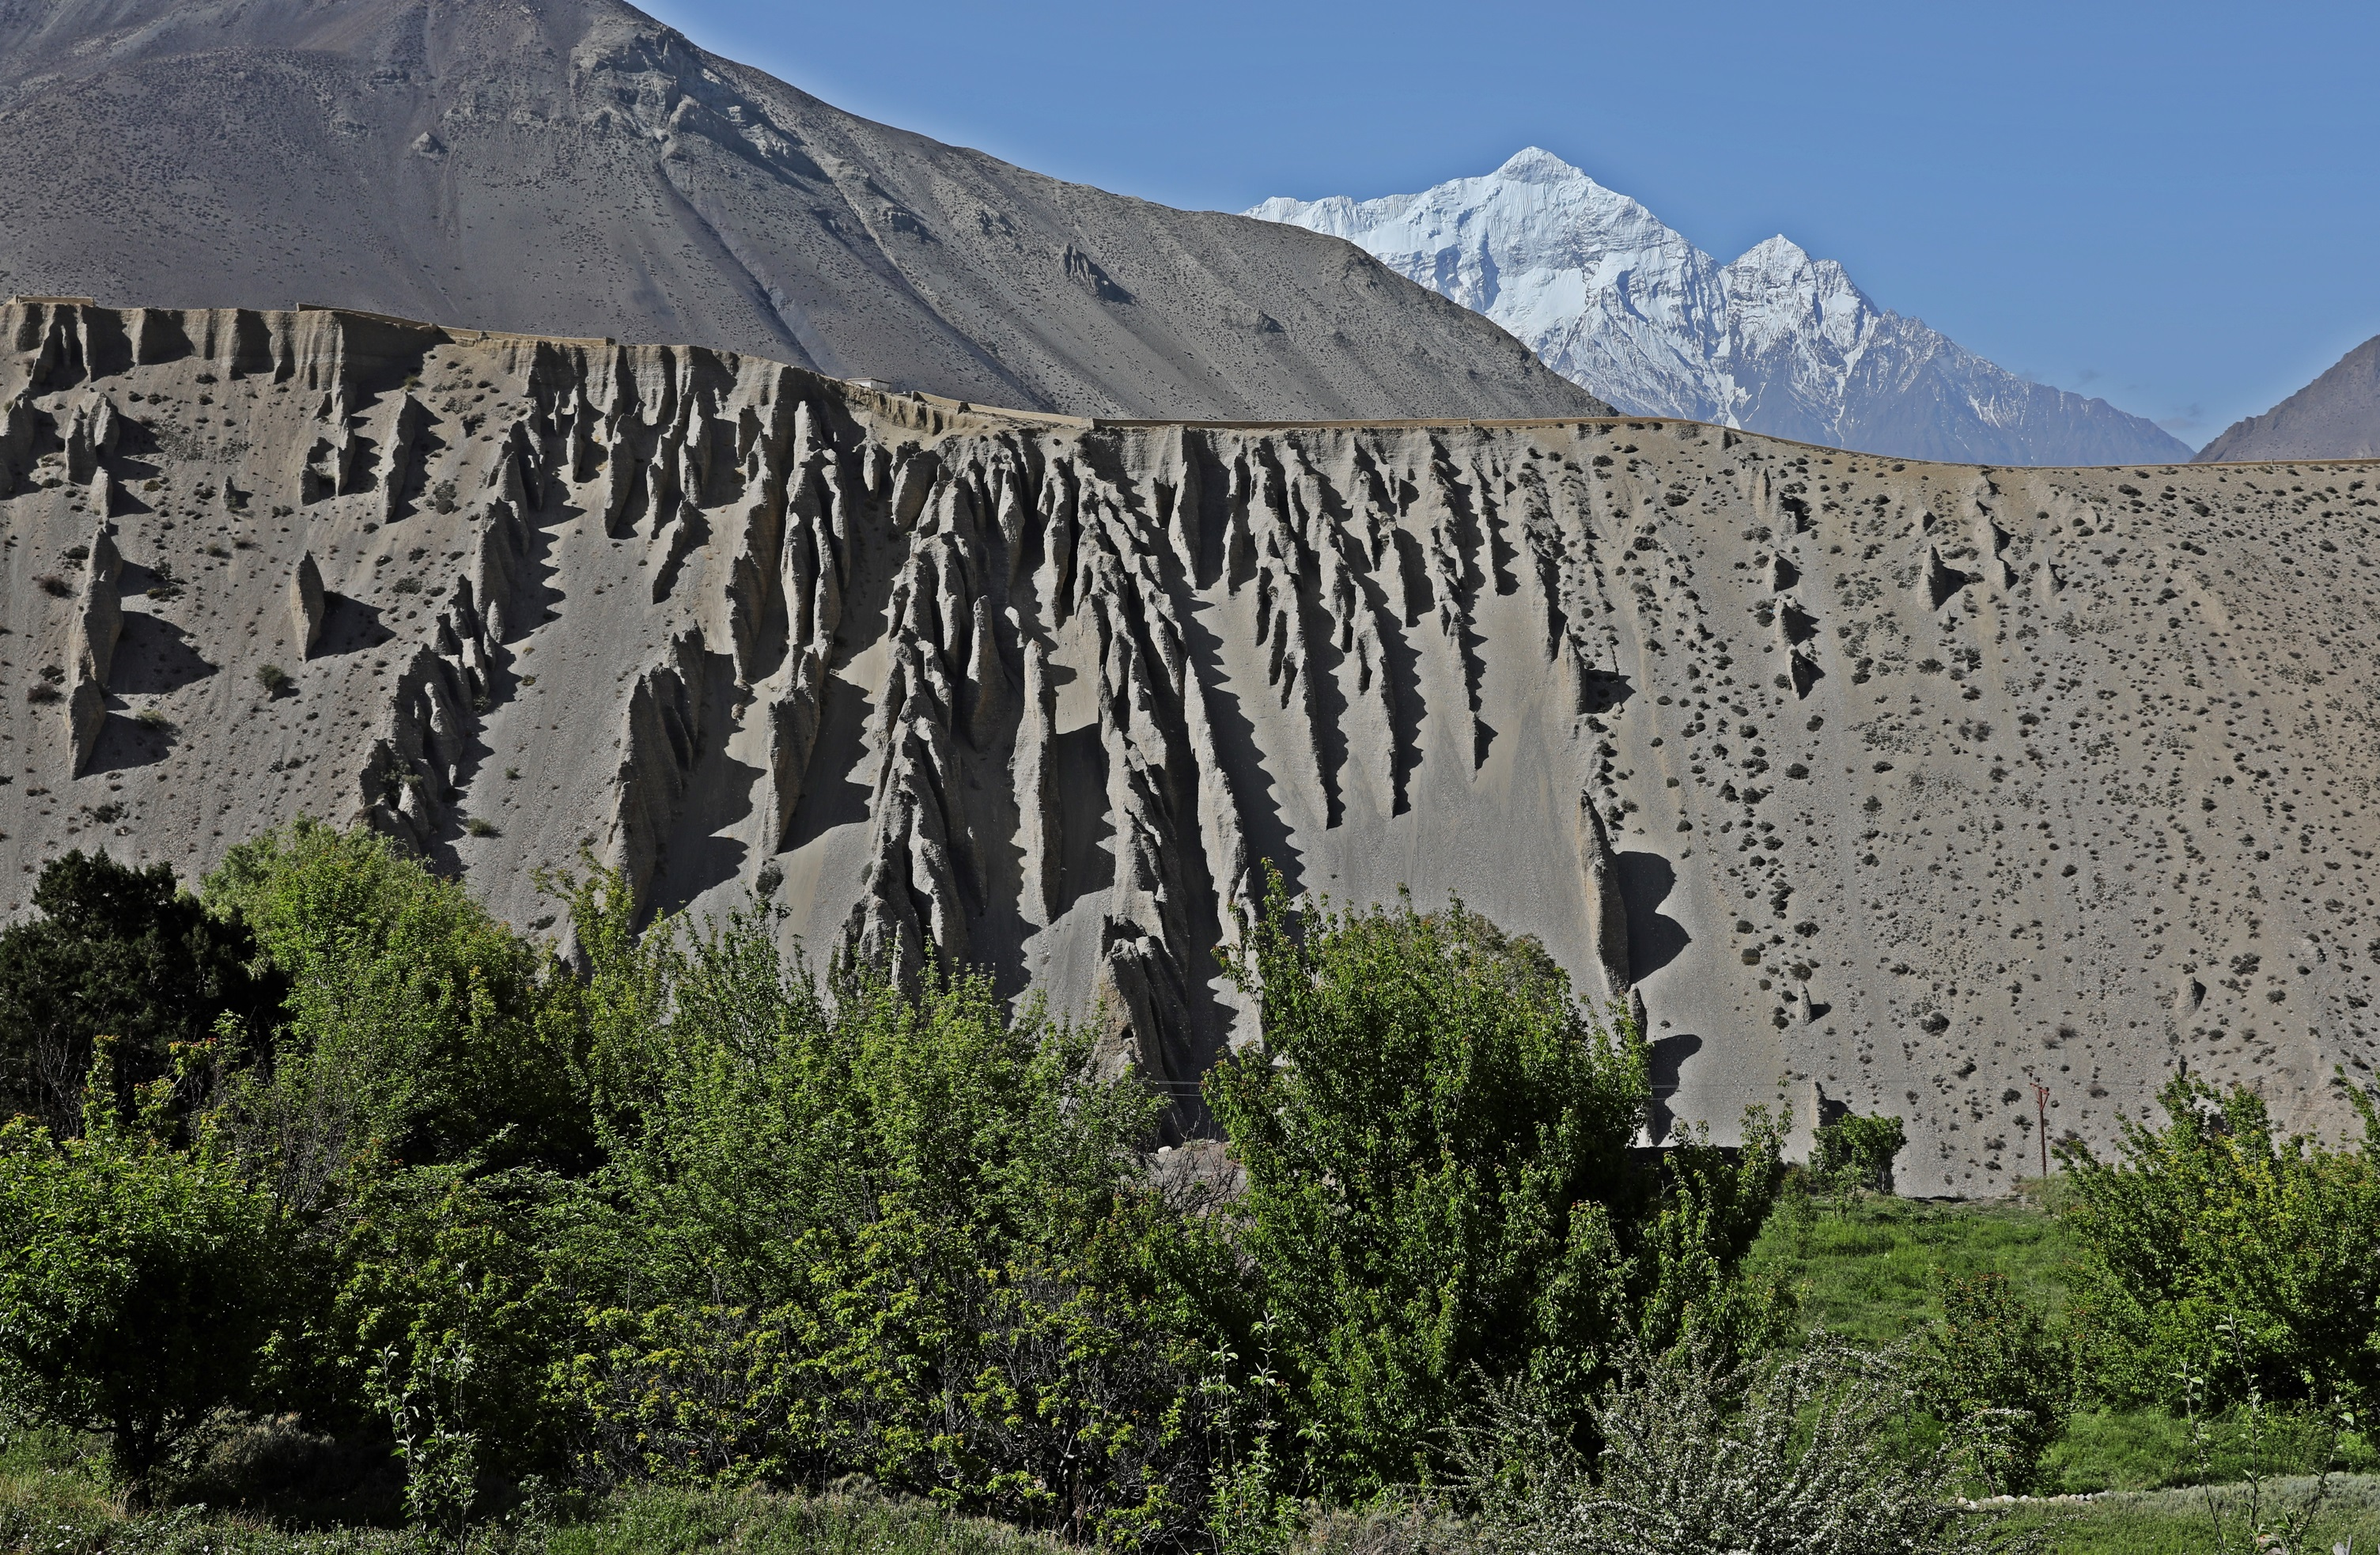 Wind worn rock features on the Upper Mustang trek